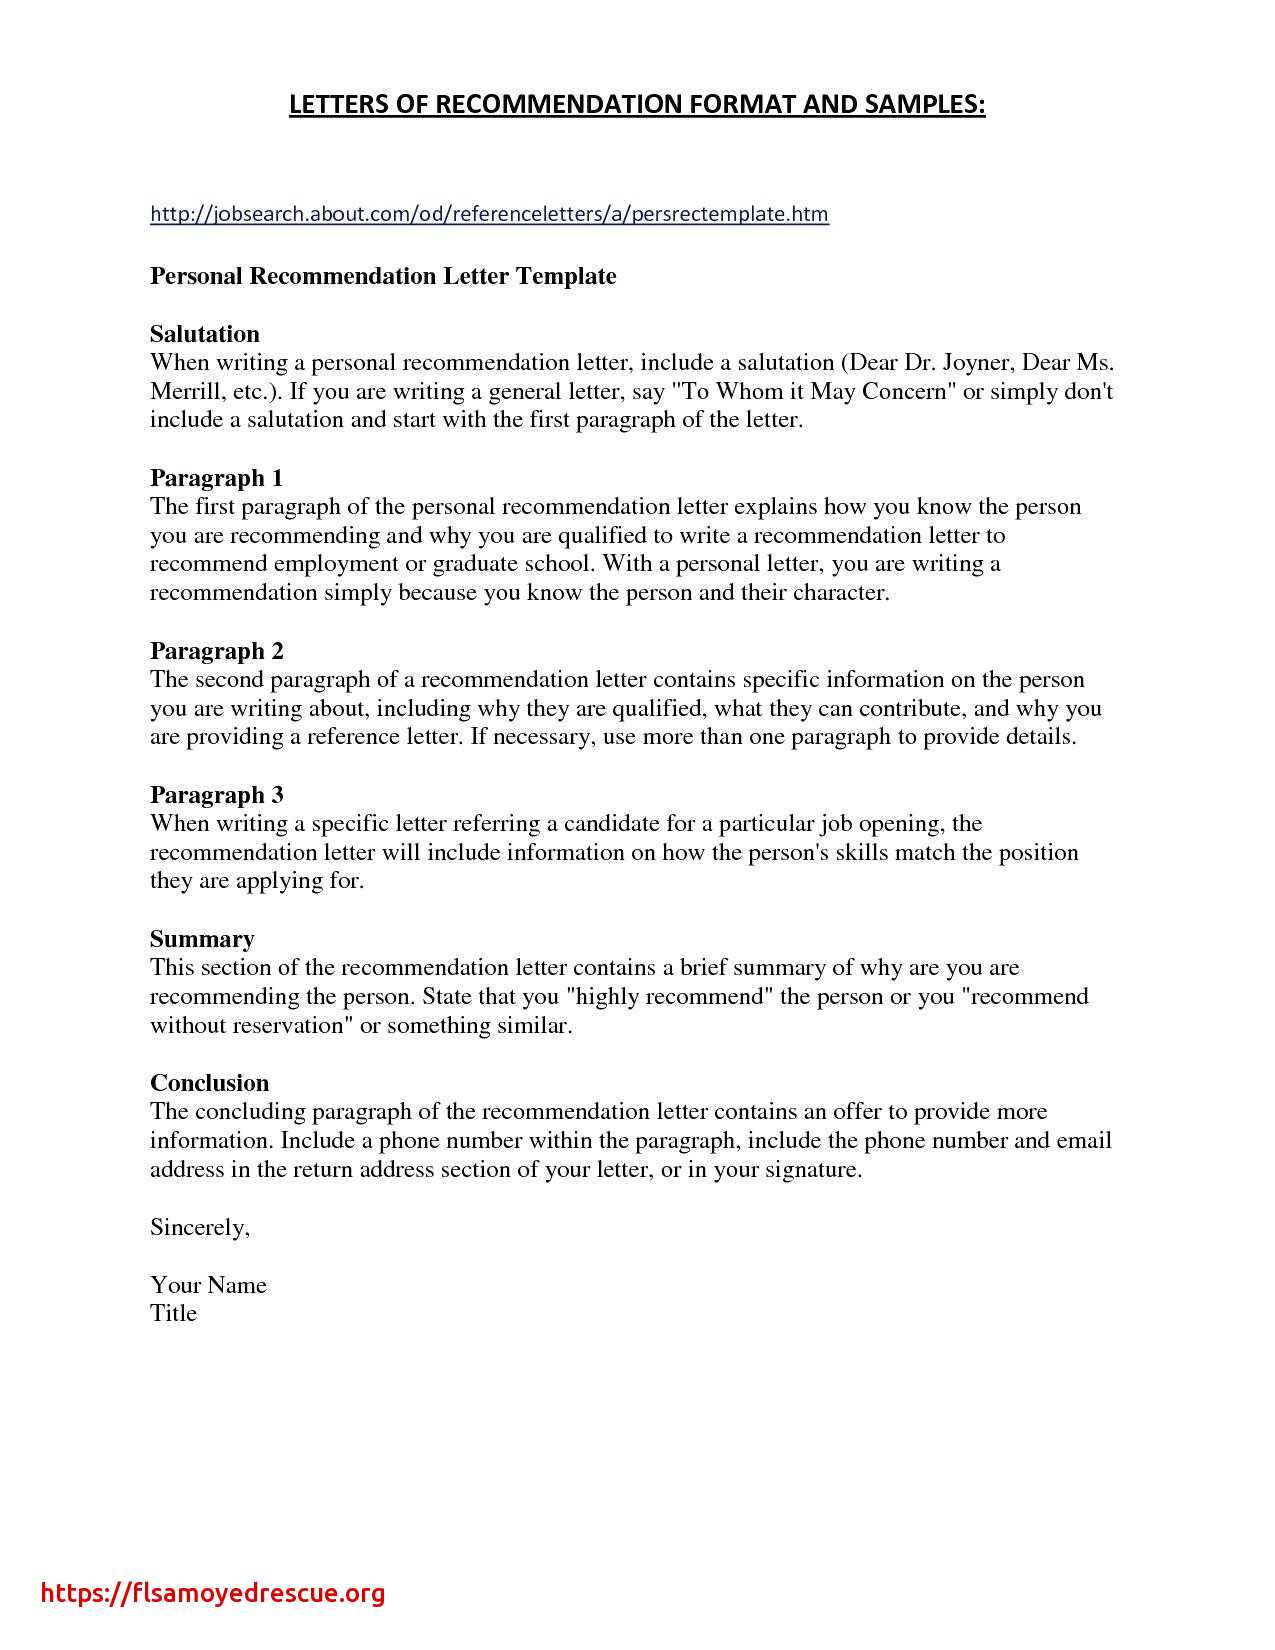 letters of recommendation for employment samples